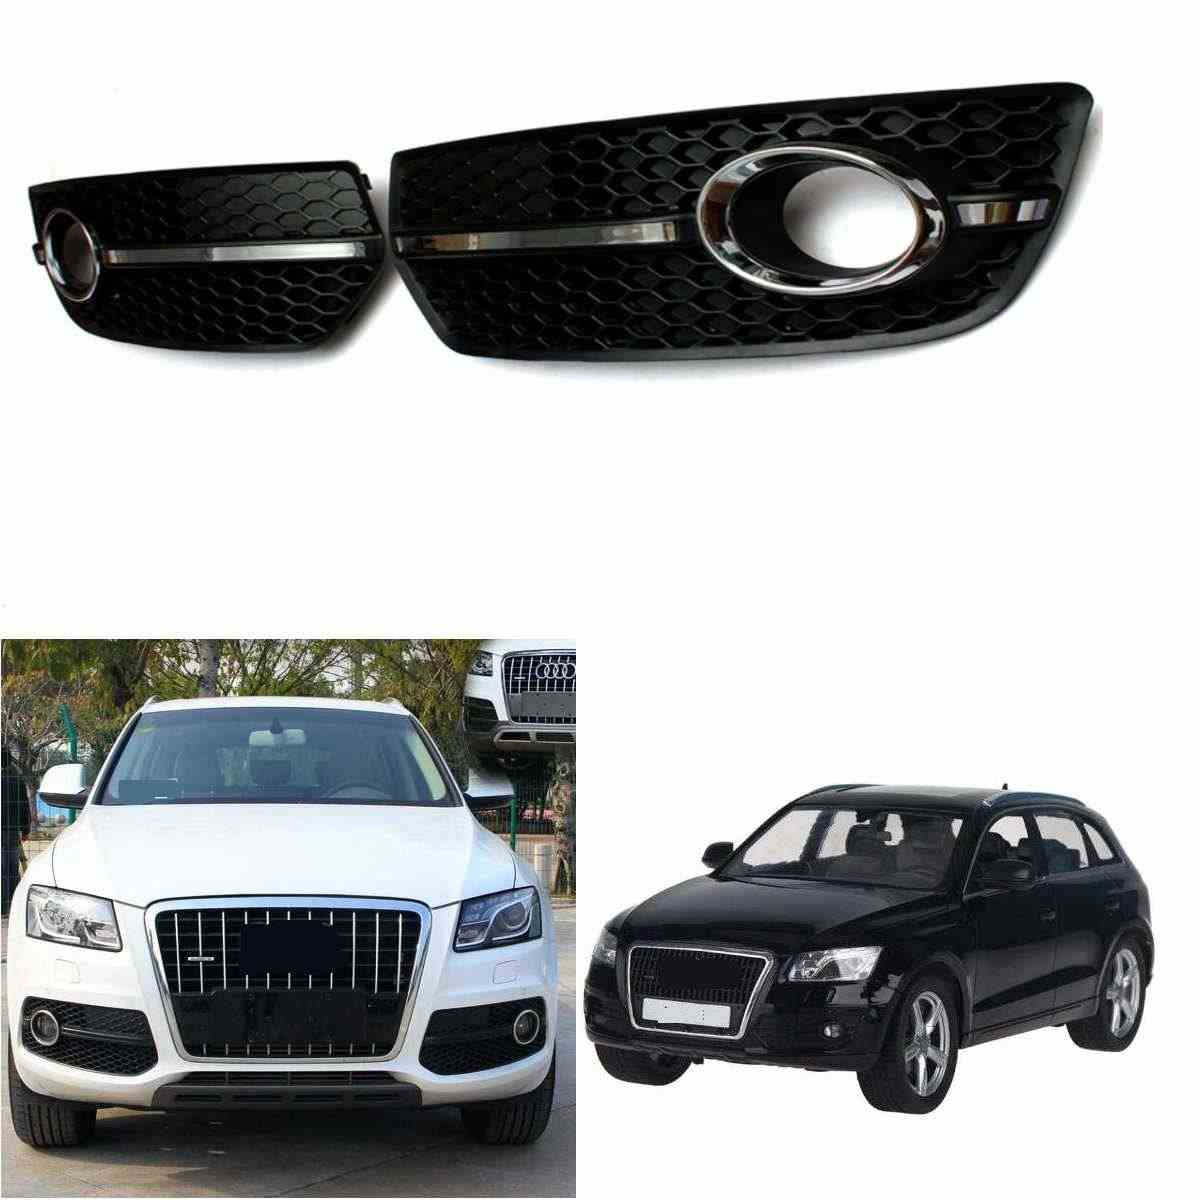 CHROME S-LINE STYLE FOG LIGHT COVER GRILLS Grill For 2009-2011 VW Audi Q5